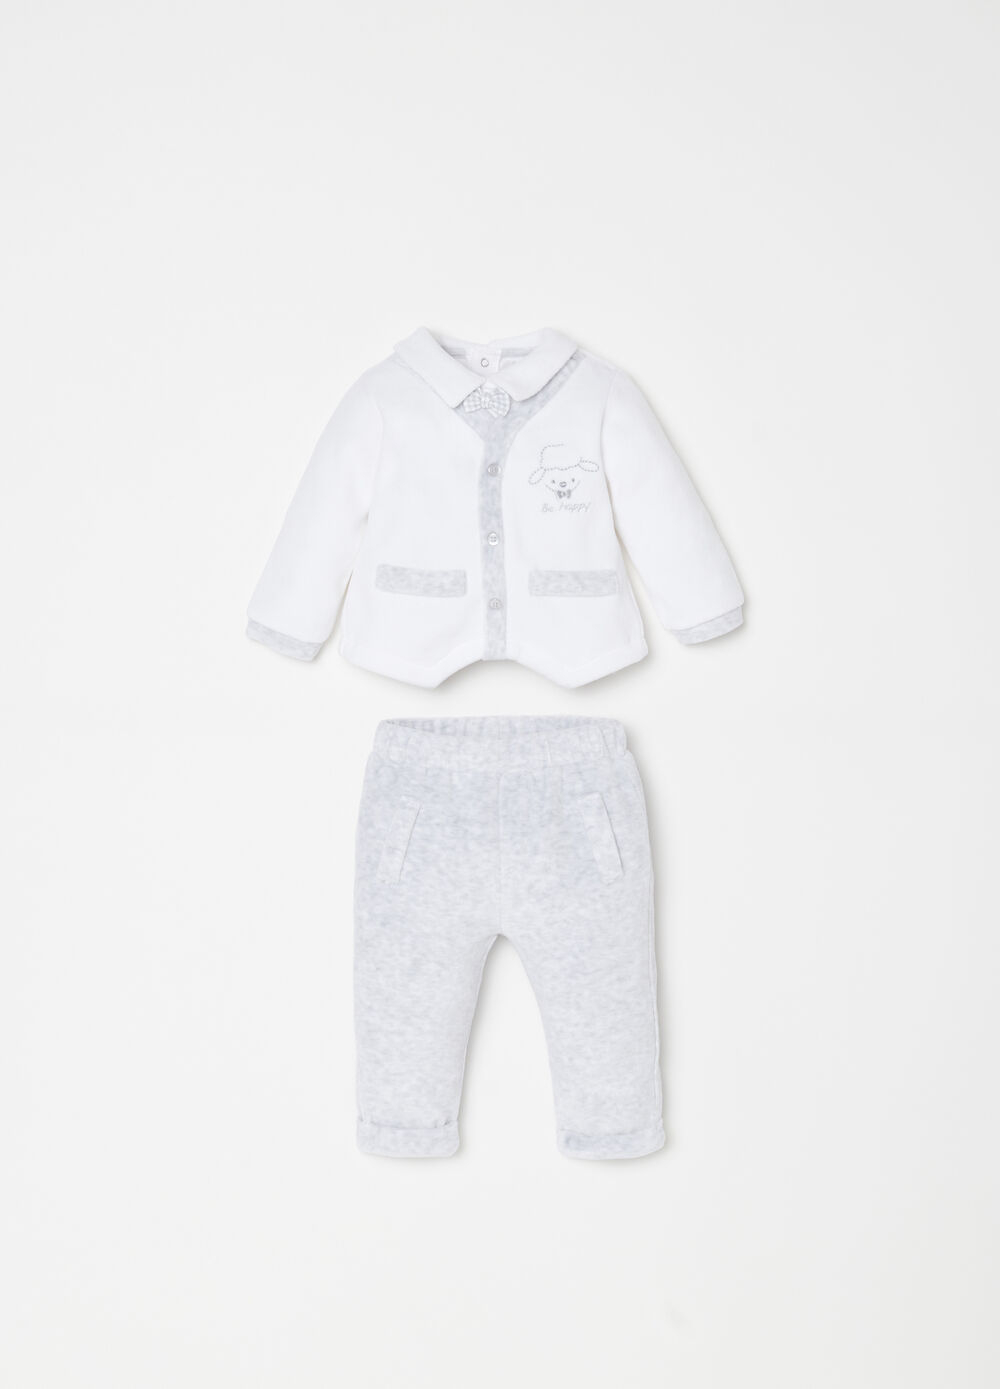 Jacket and trousers set with sheep embroidery